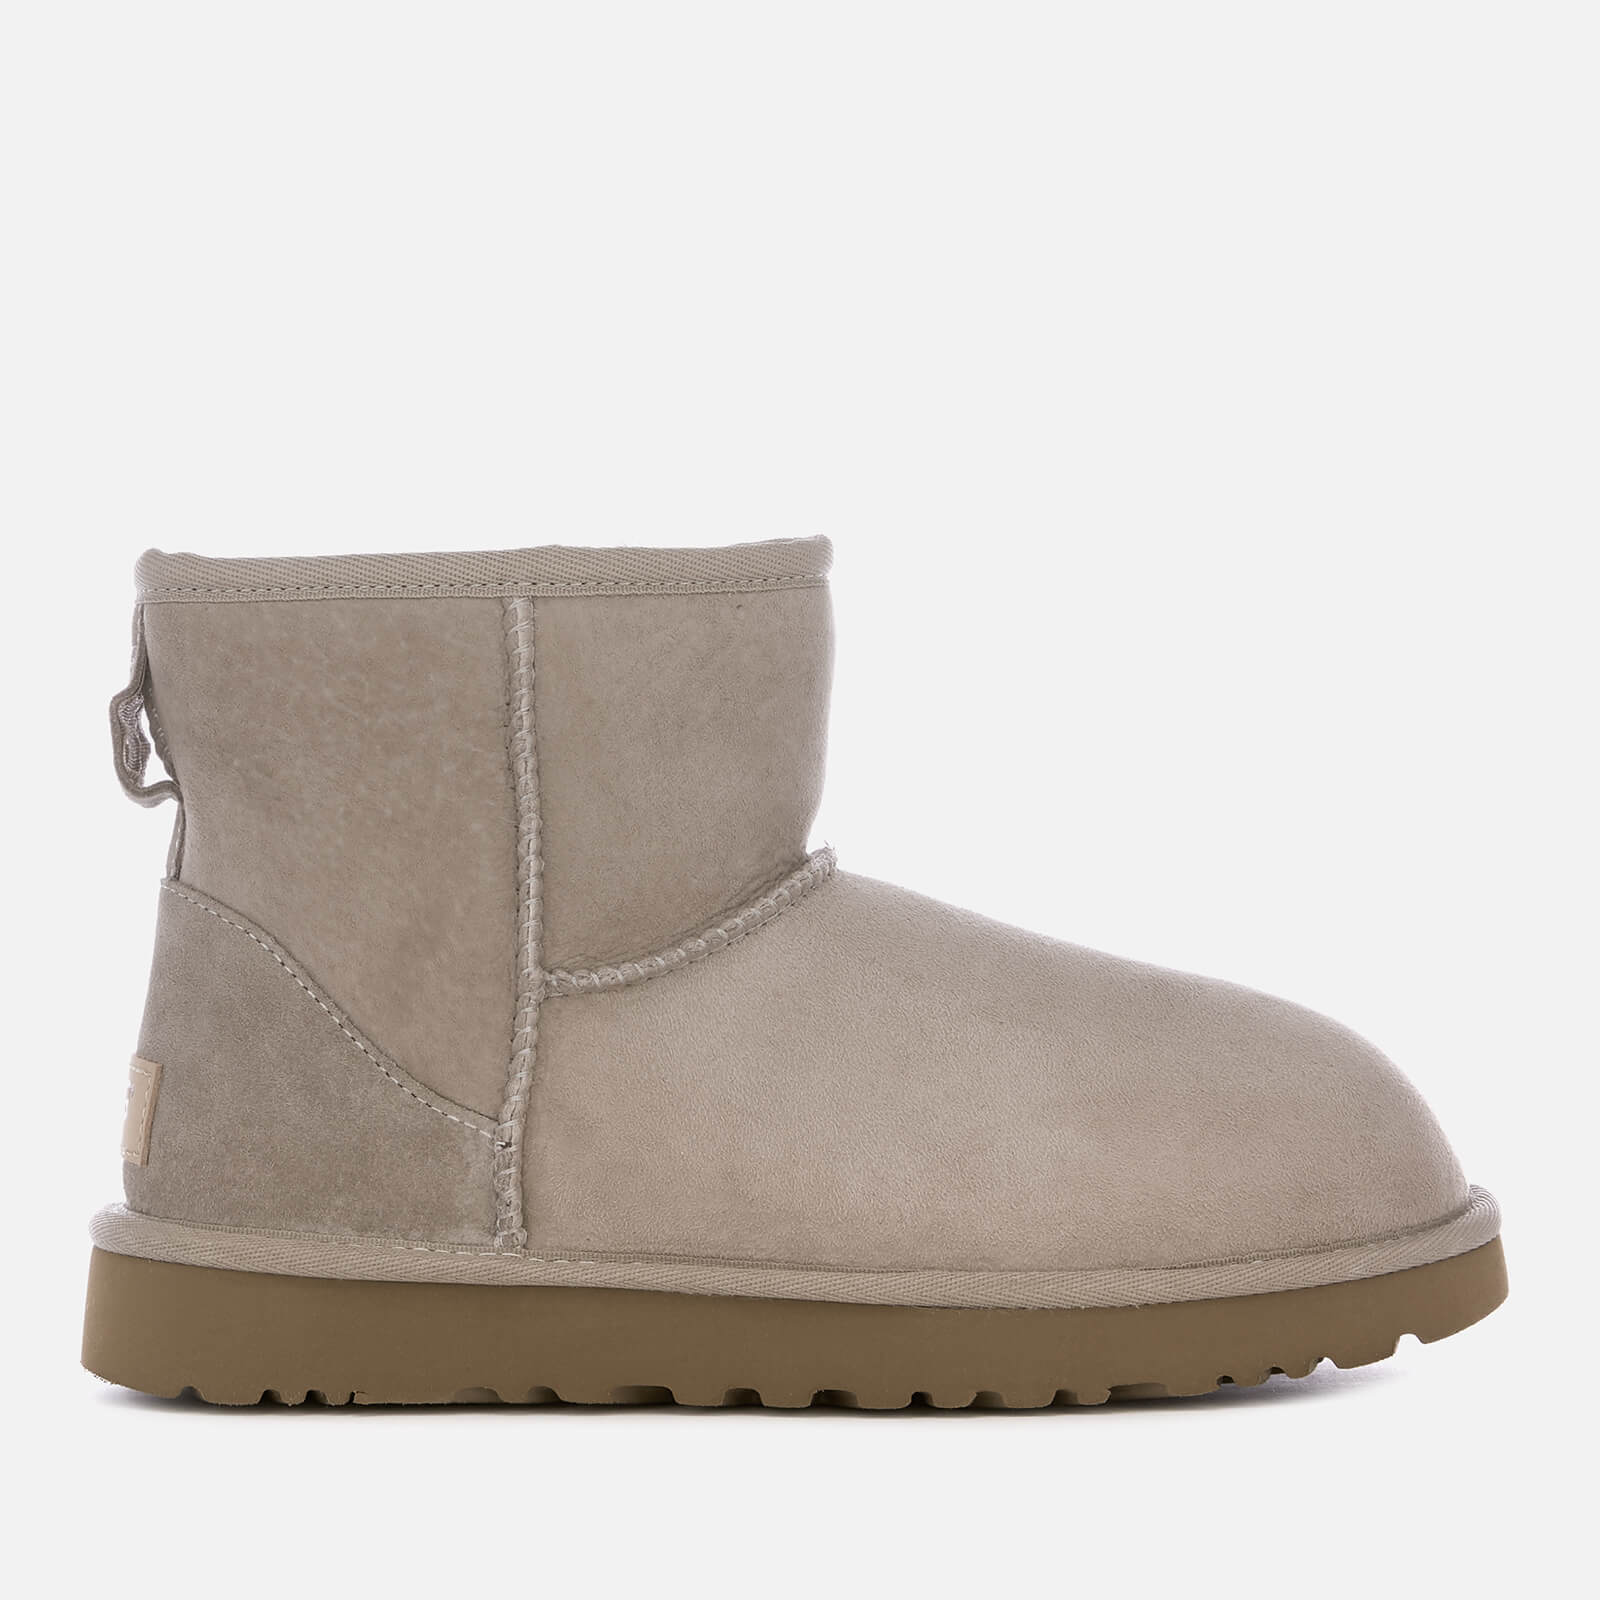 Ugg Womens Classic Mini Ii Sheepskin Boots Oyster Clothing